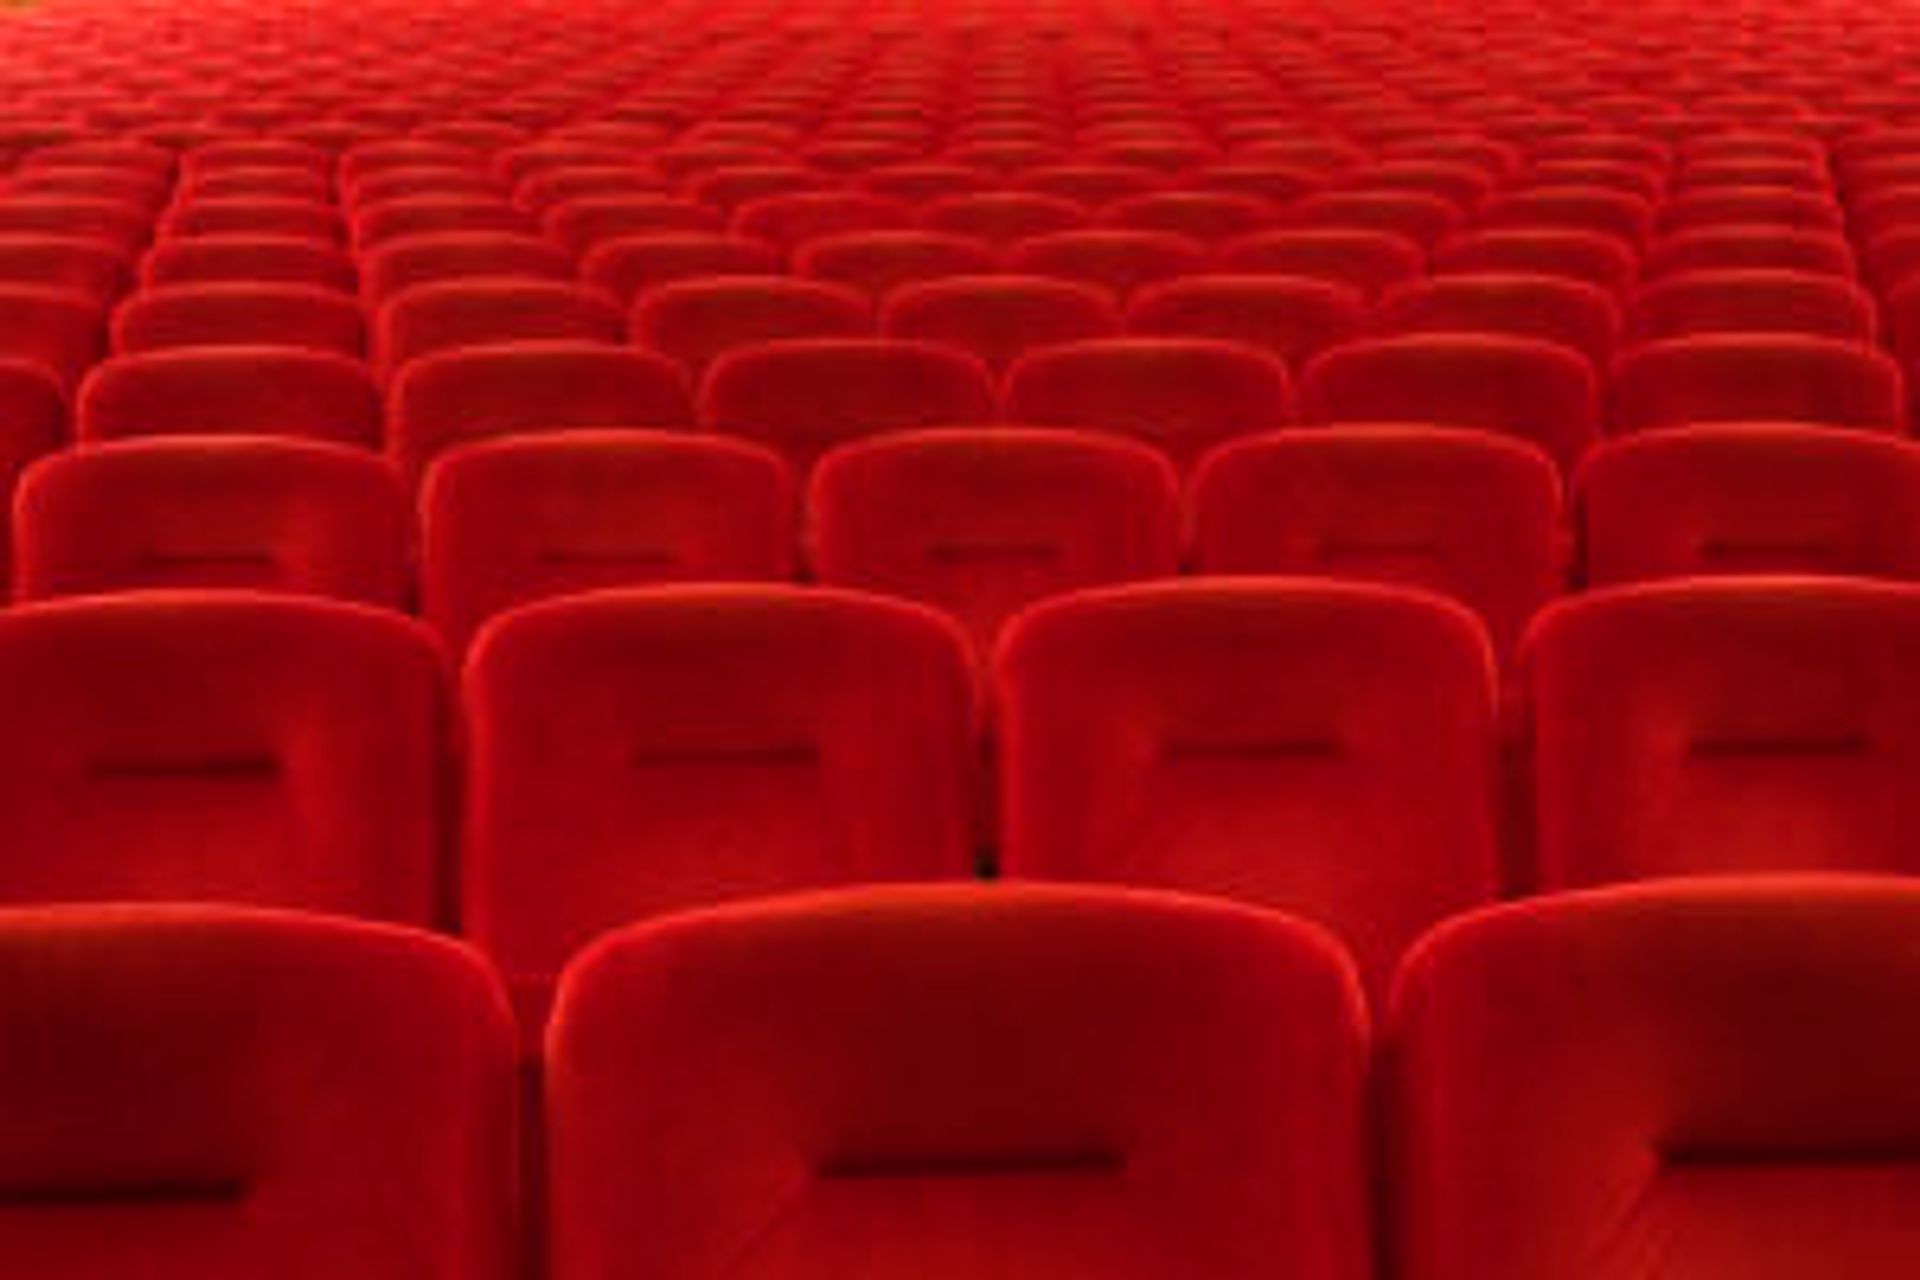 Rows of red velour cinema theatre seats.